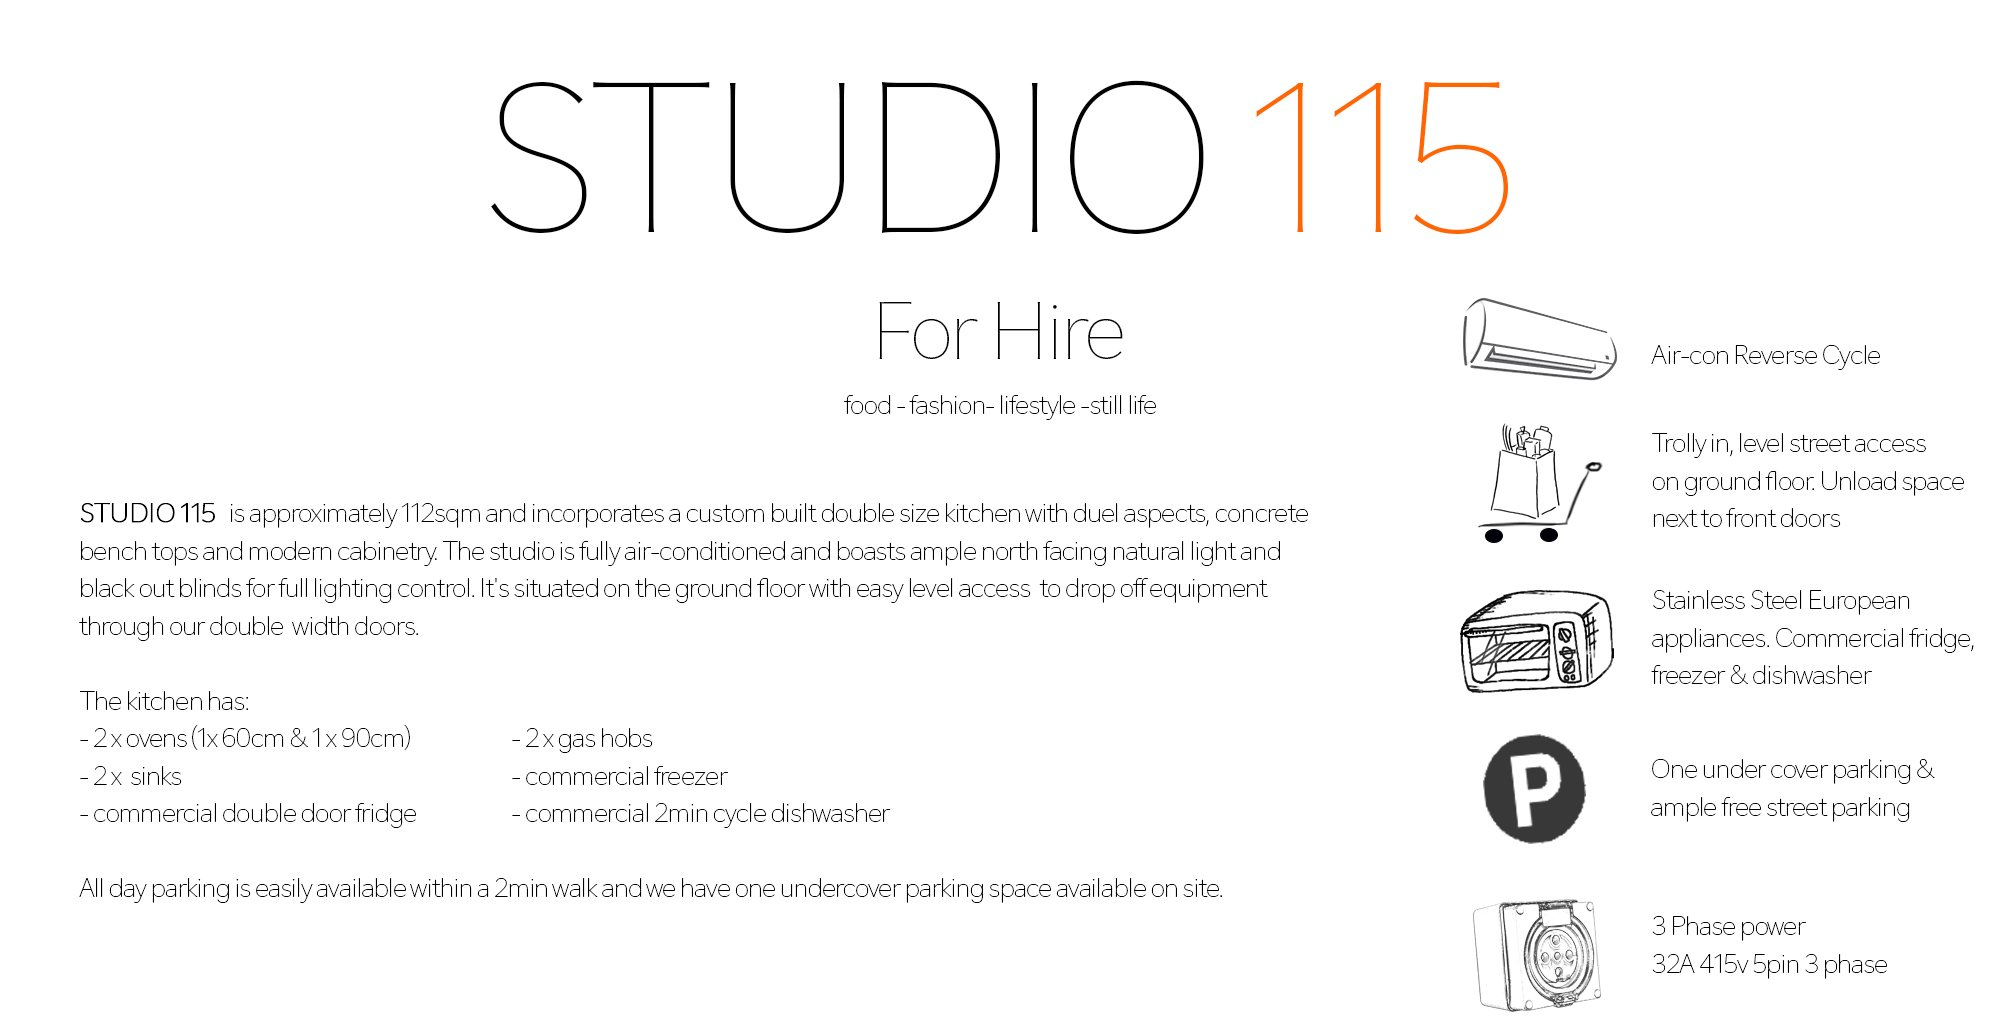 Sydney Food Studio Hire and Sydney Studio Hire STUDIO 115 is ready for Hire Our Studio space Studio 115 is availible for hire. Fully aircondioned, one half is a custom built kitchen studio for food...